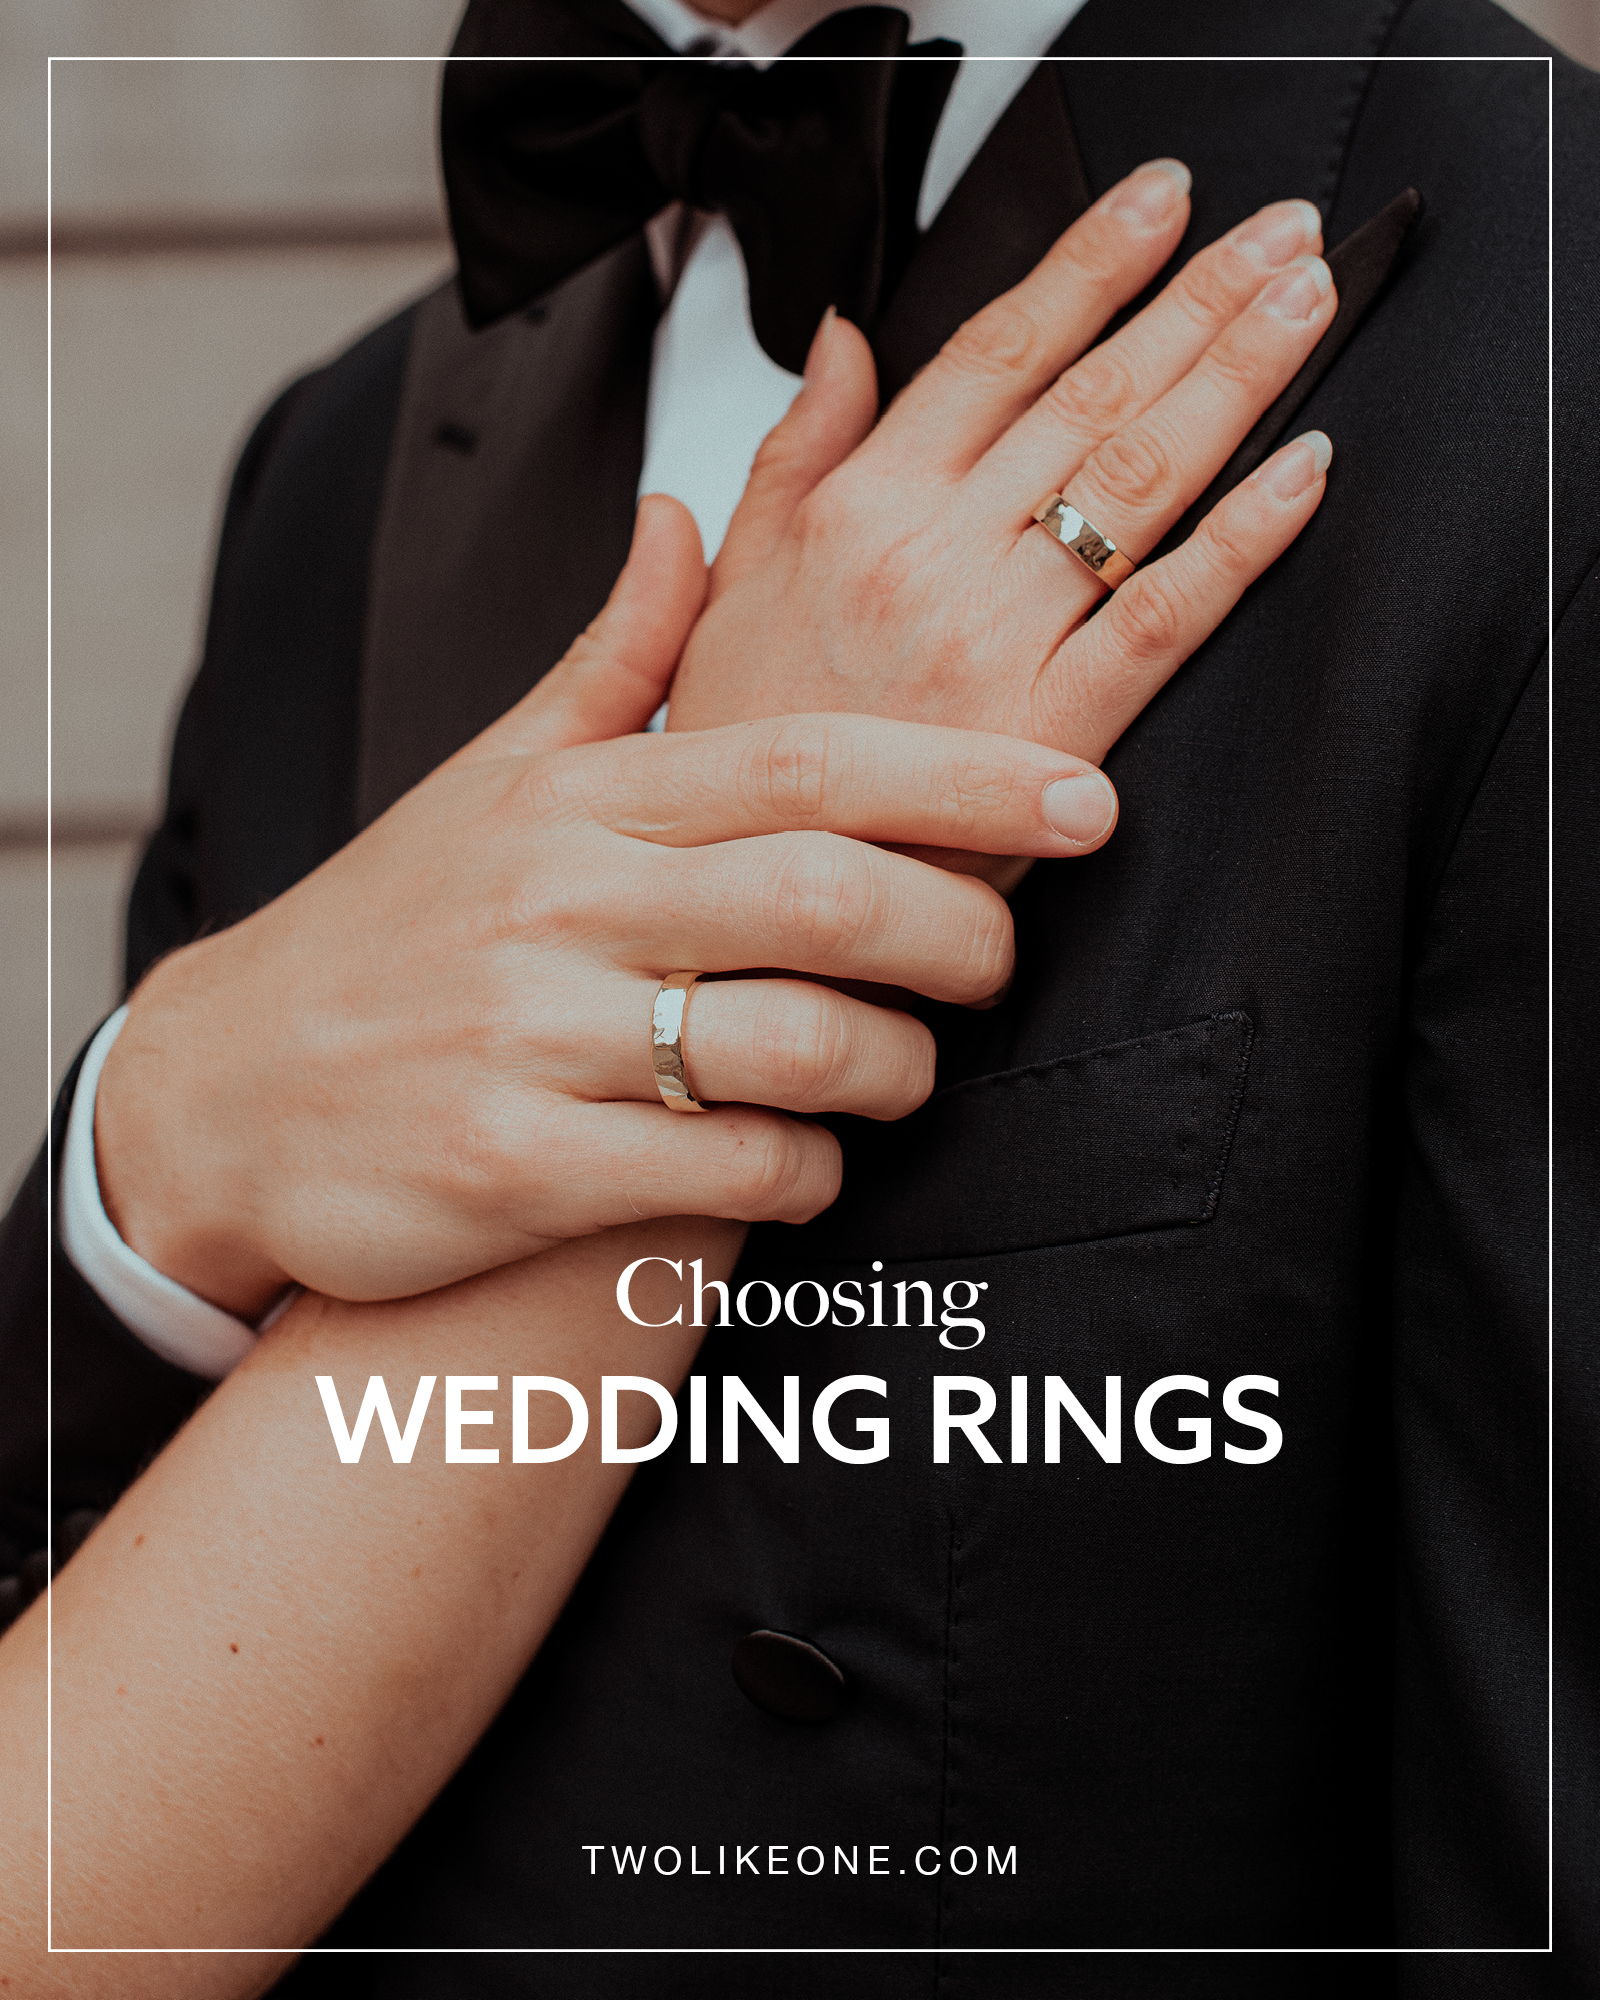 Choosing wedding rings inspiration at twolikeone.com